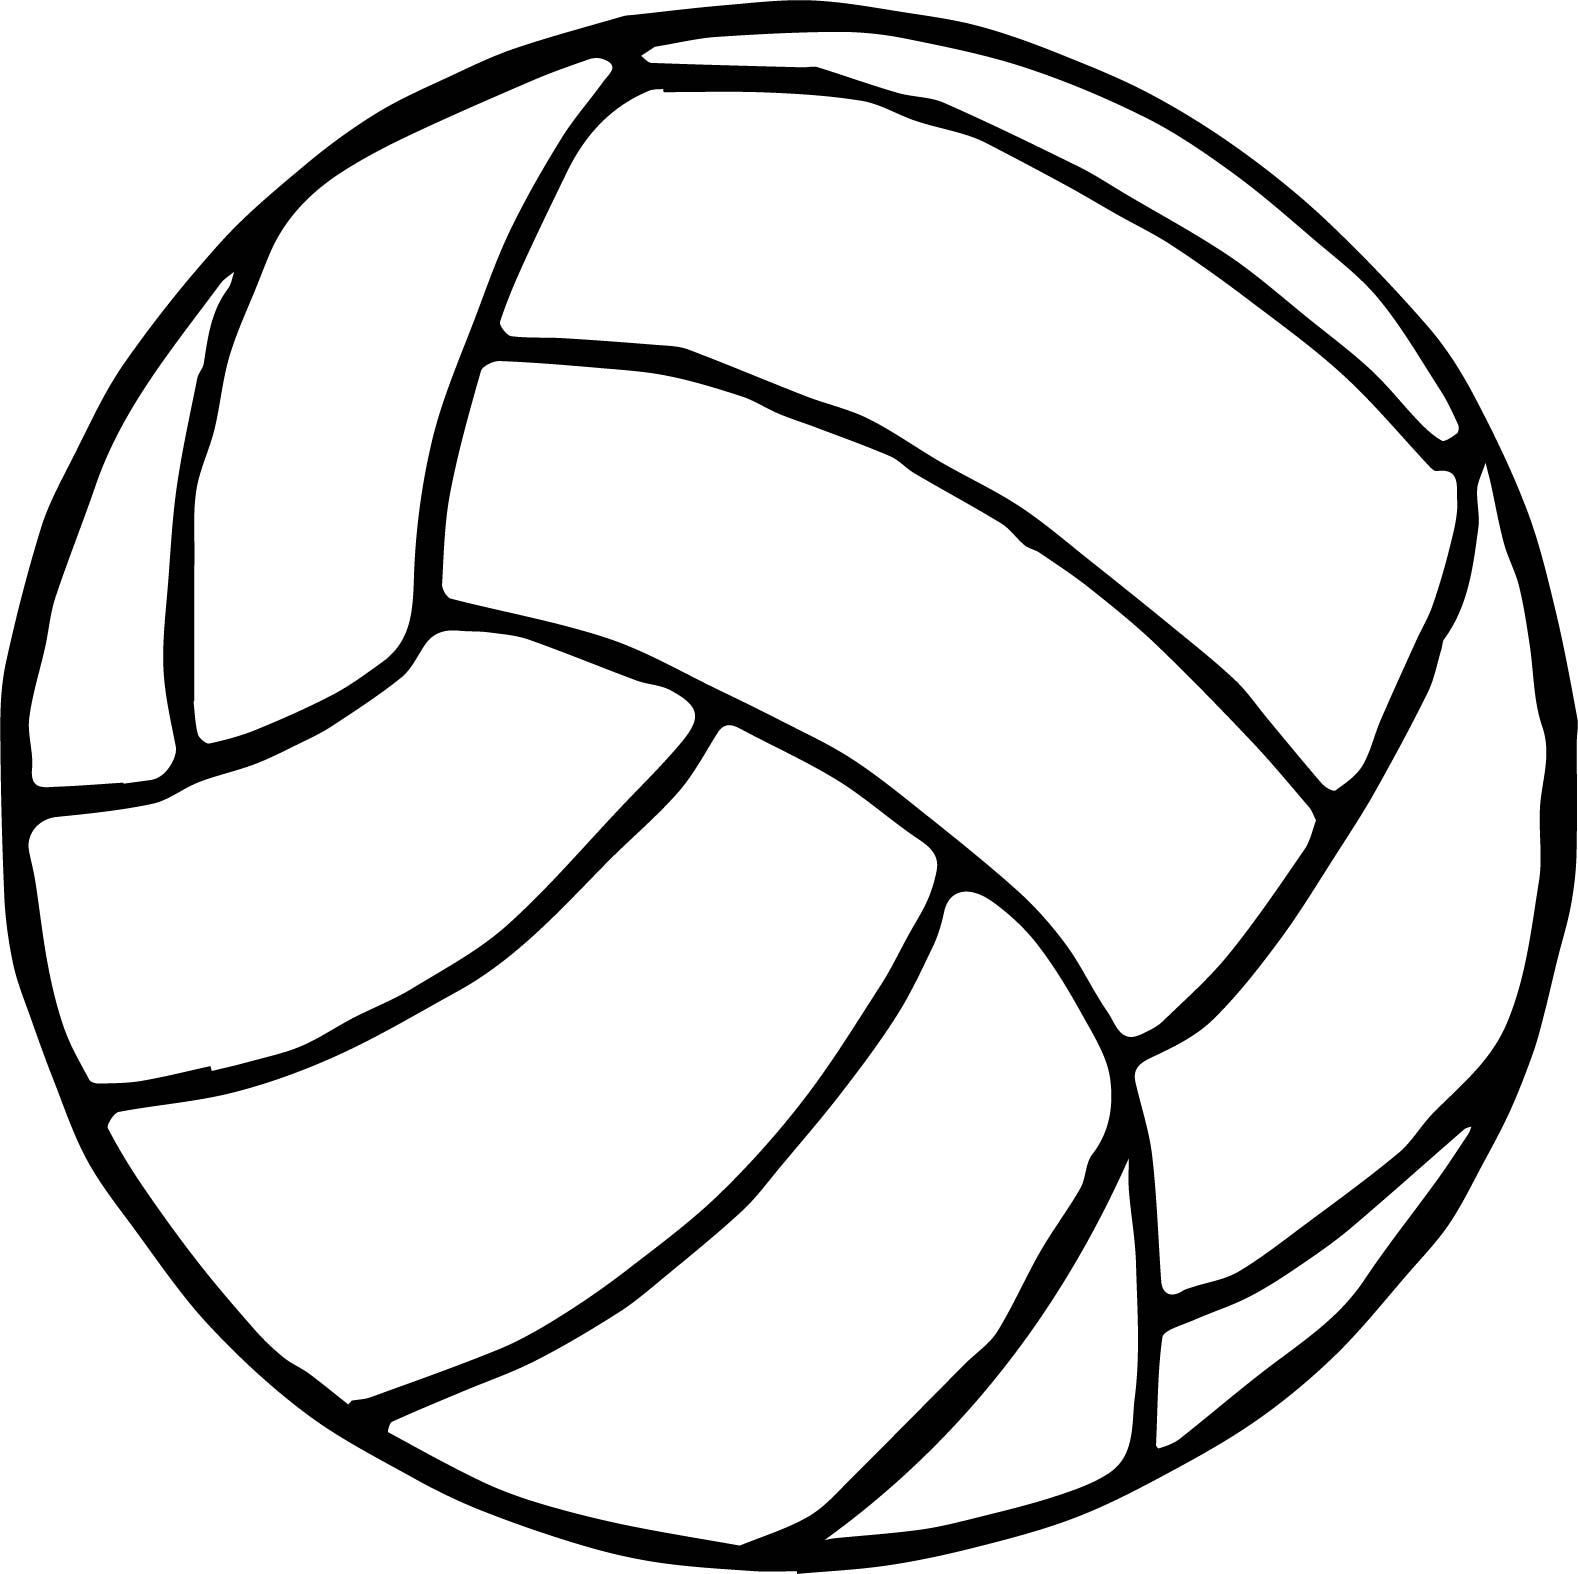 Awesome Volleyball Ball Coloring Page Coloring Pages Sports Coloring Pages Coloring Contest